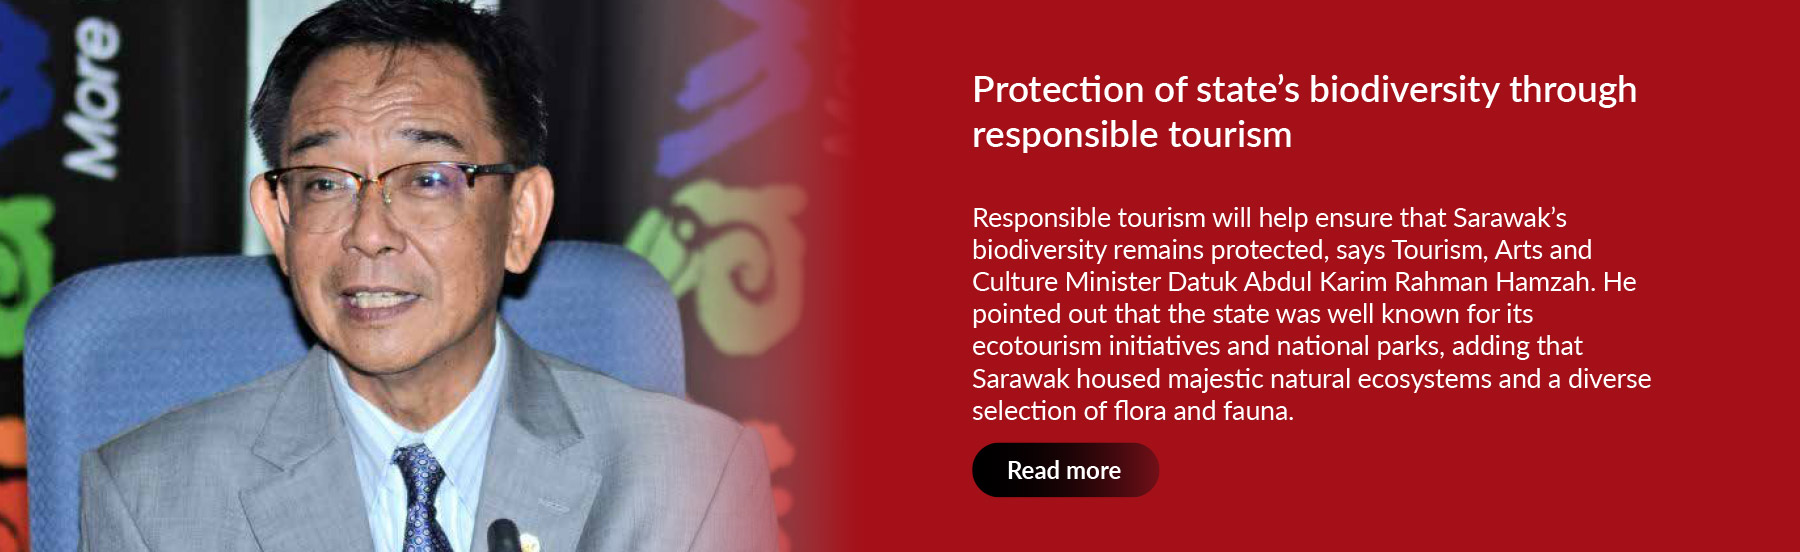 Protection of state's biodiversity through responsible tourism